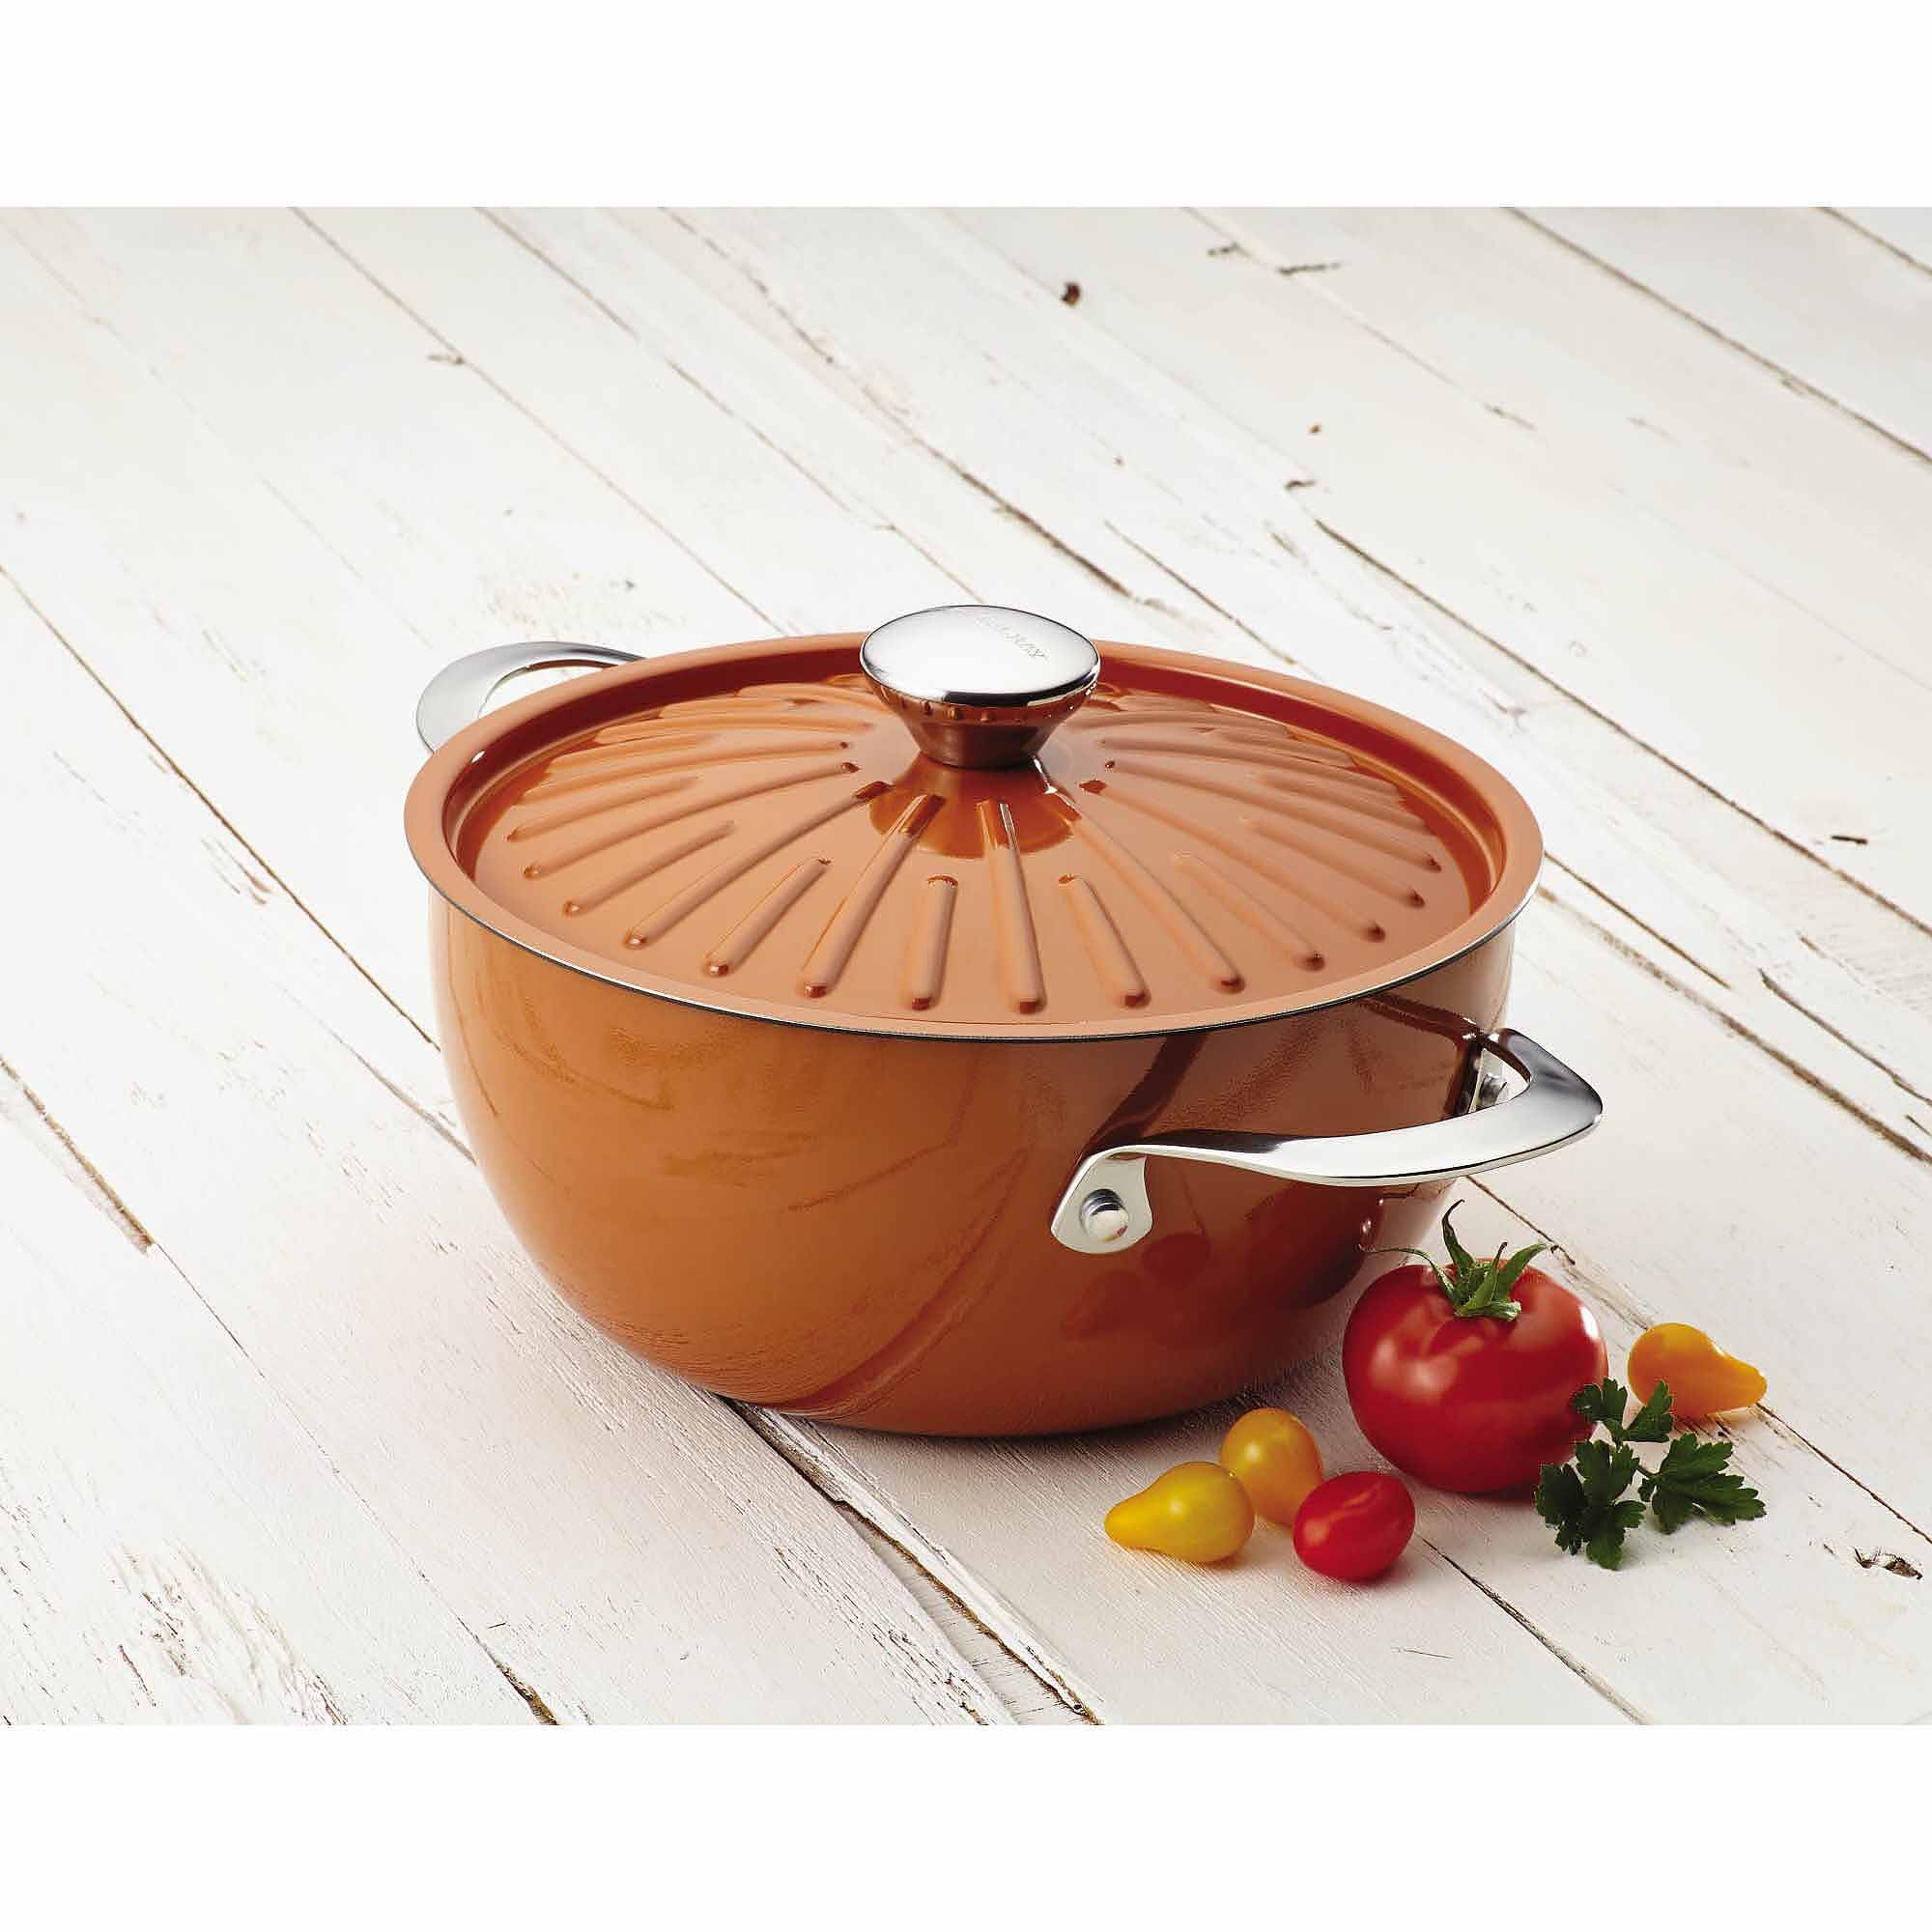 Rachael Ray Cucina Oven To Table Hard Enamel Nonstick 4.5 Qt Covered Round